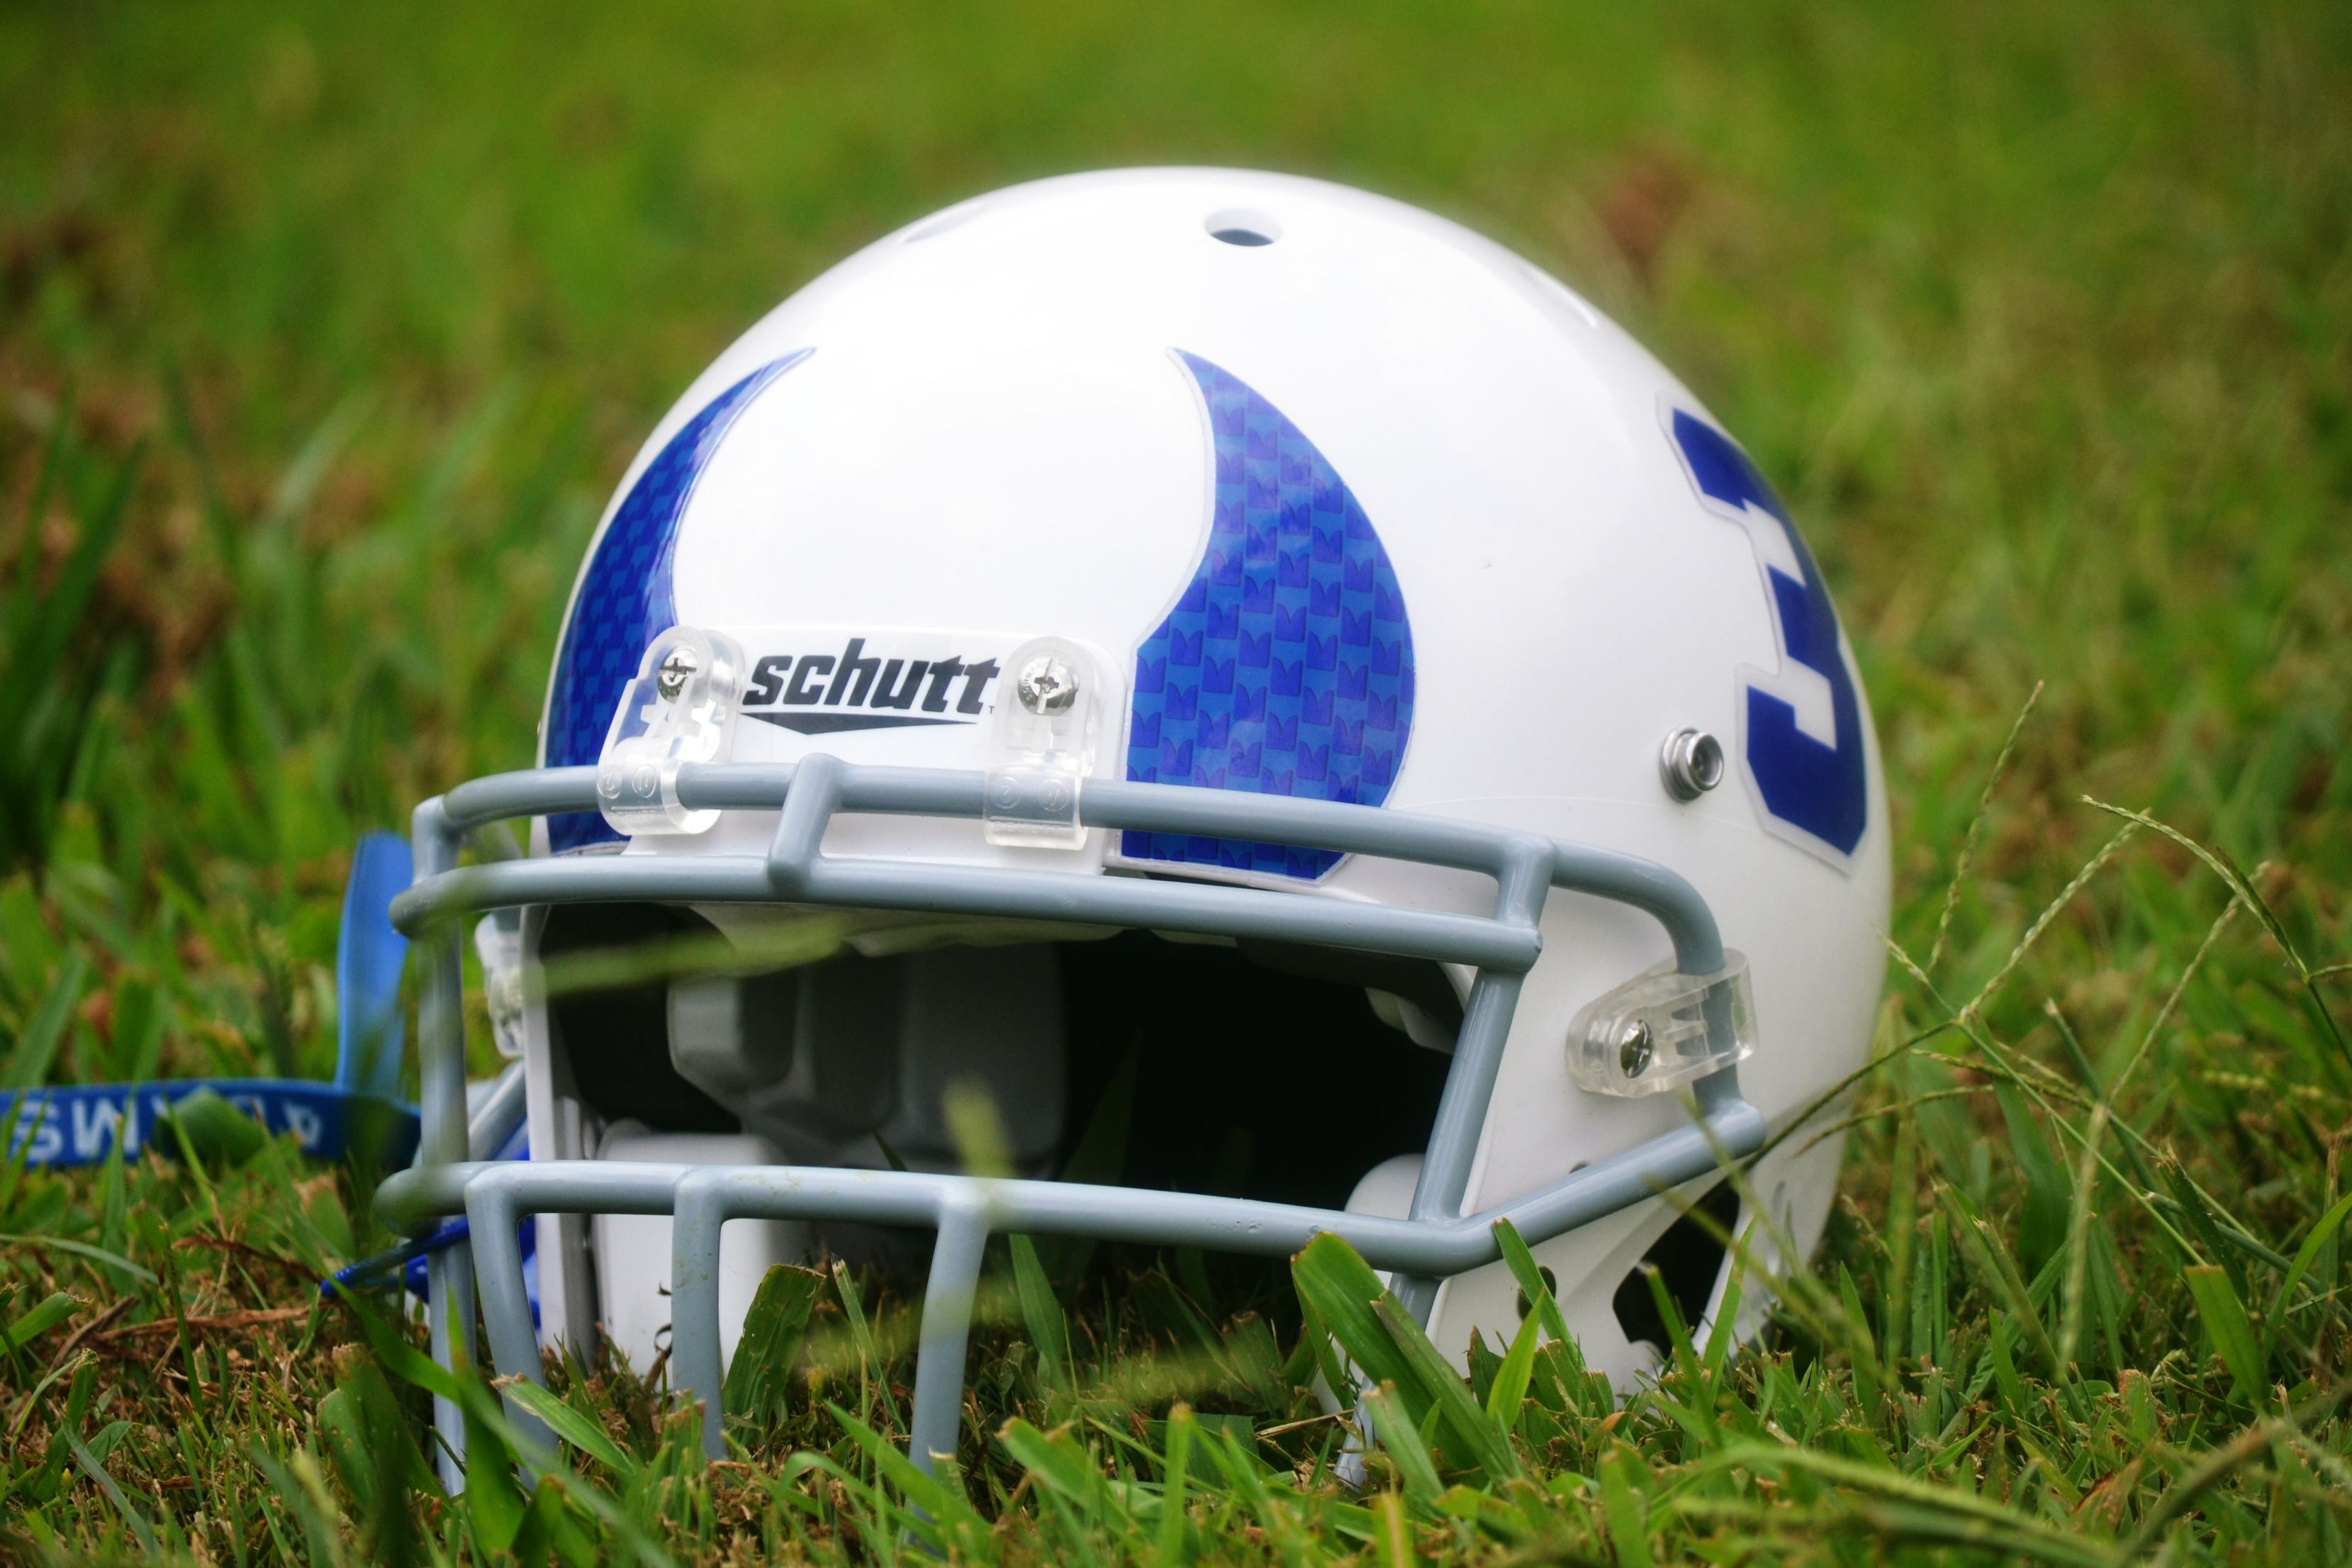 Harriman Blue Devils Football Helmet Football Helmets Blue Devils Football Football Helmet Design